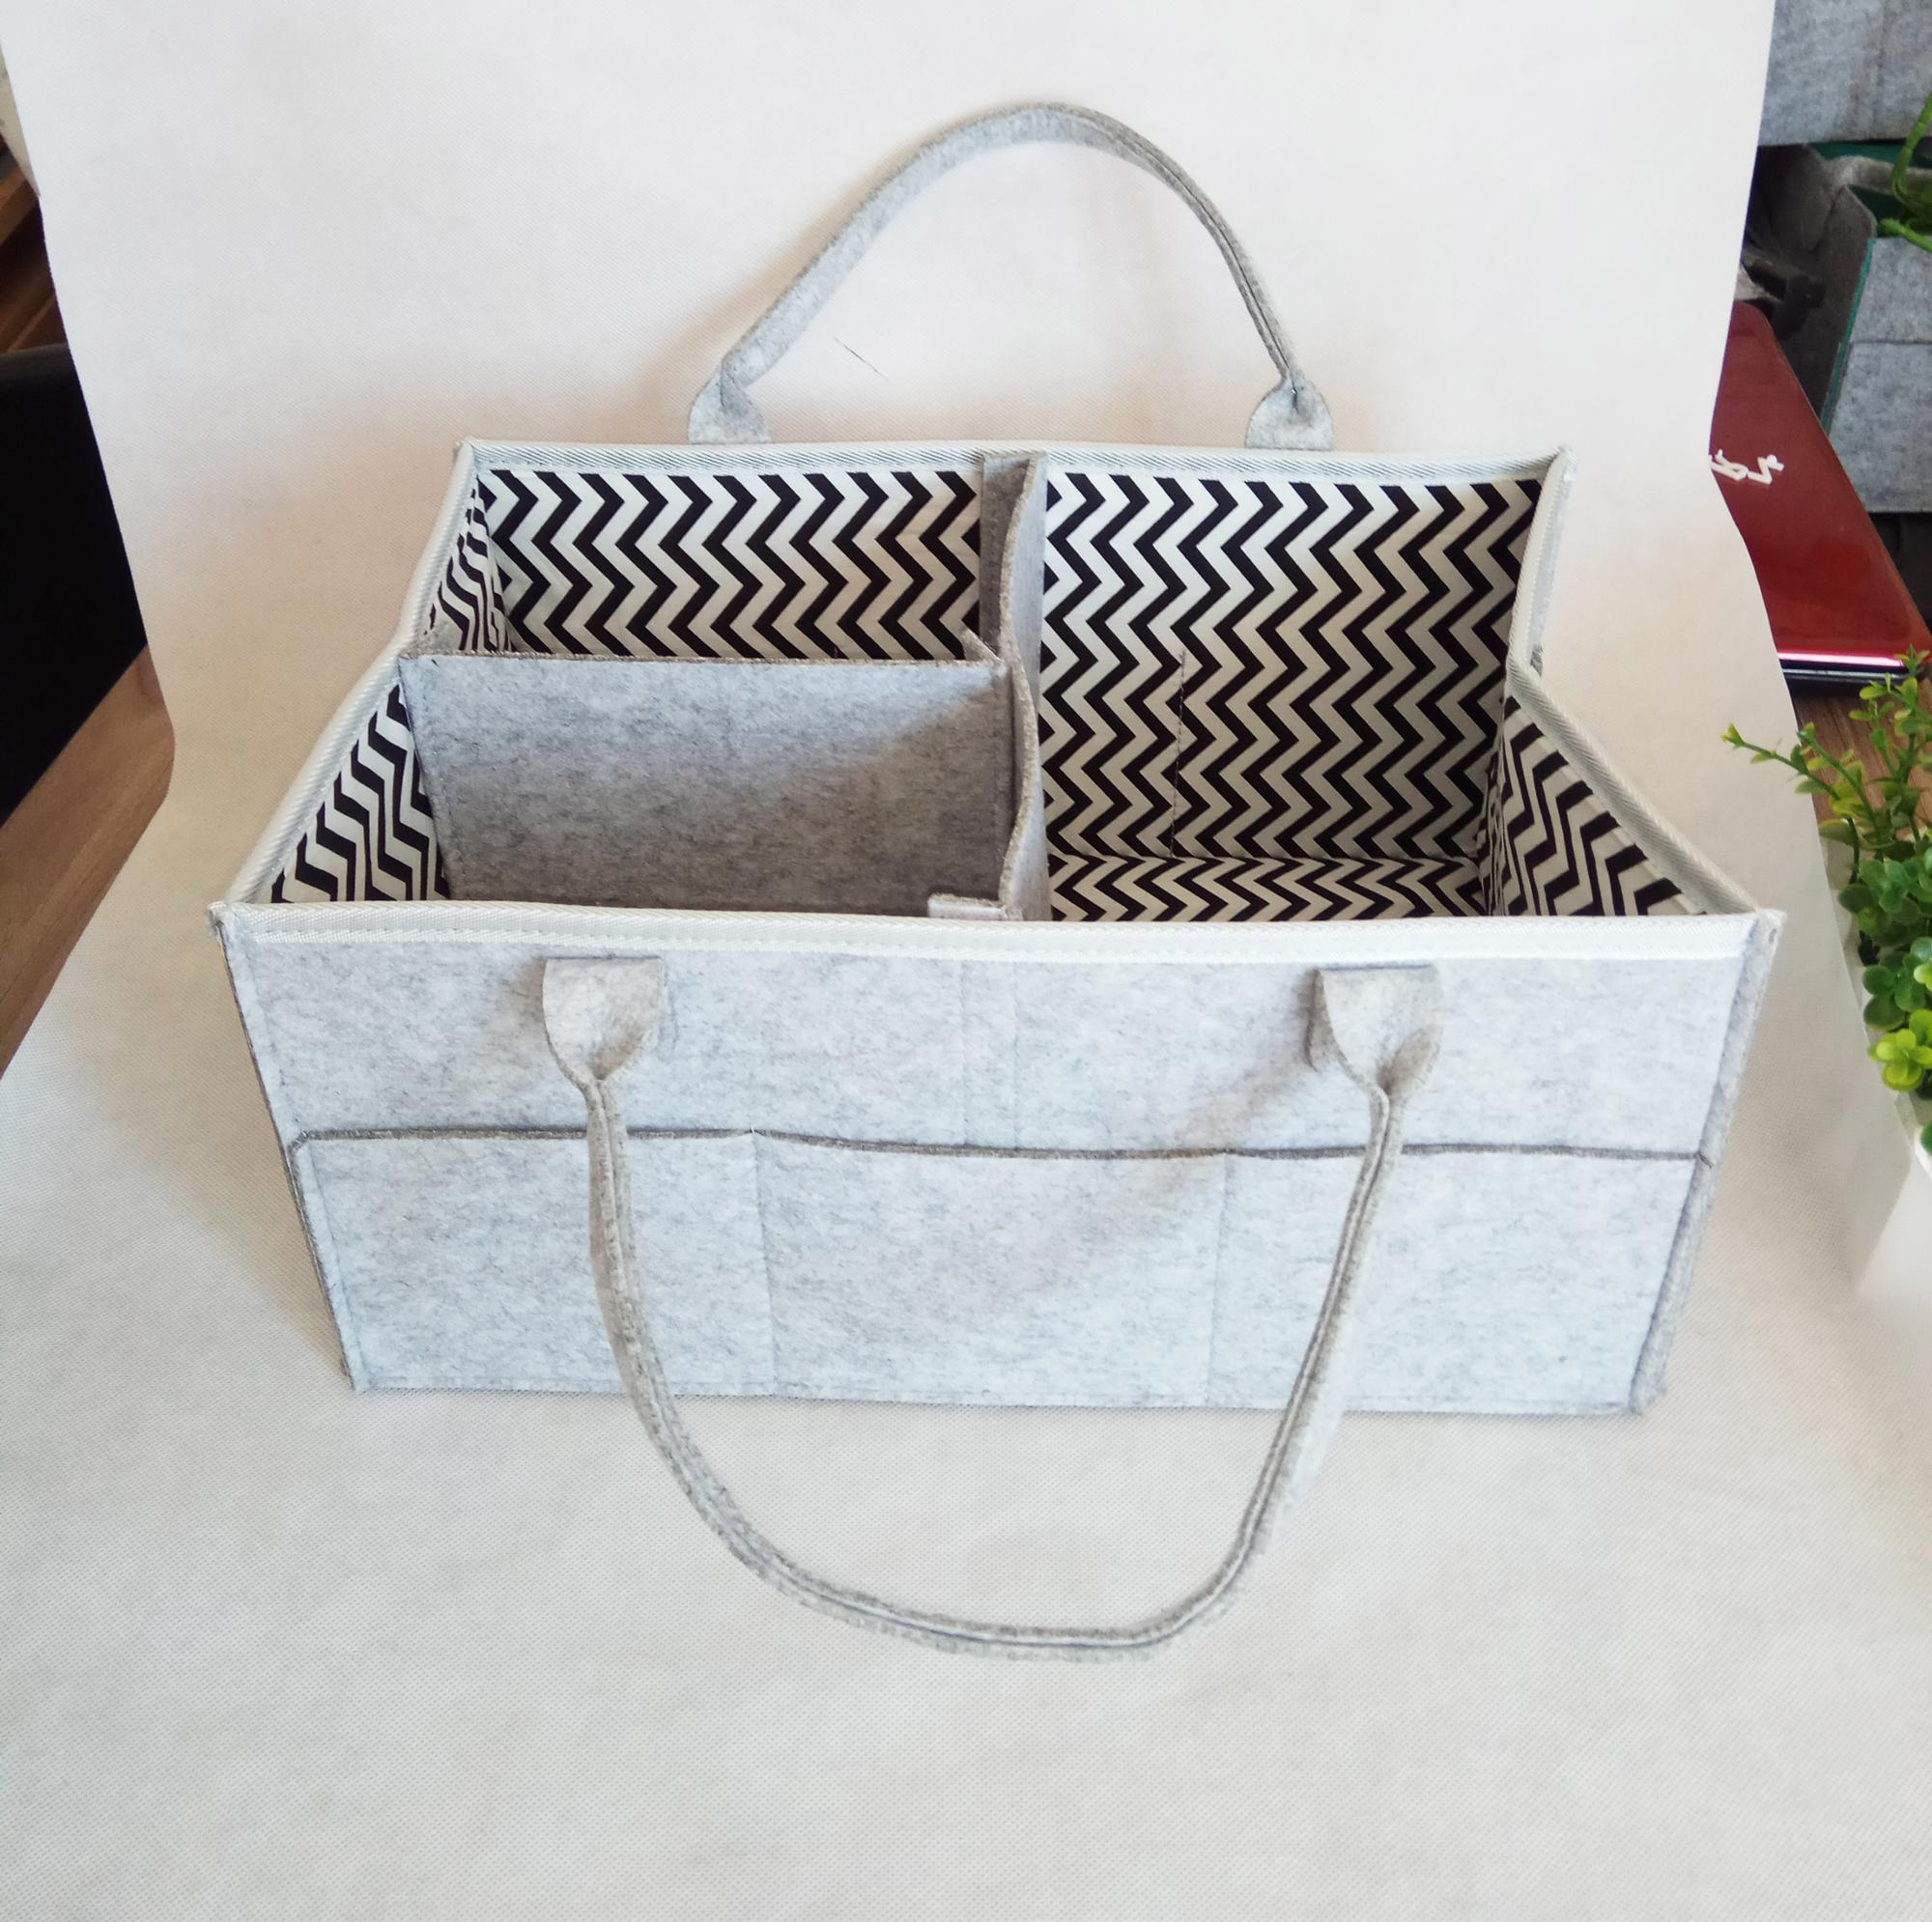 Baby Nursery Storage Bin Felt Diaper Caddy For Diapers And Wipes View Zhengrui Product Details From Nangong City Zheng Rui